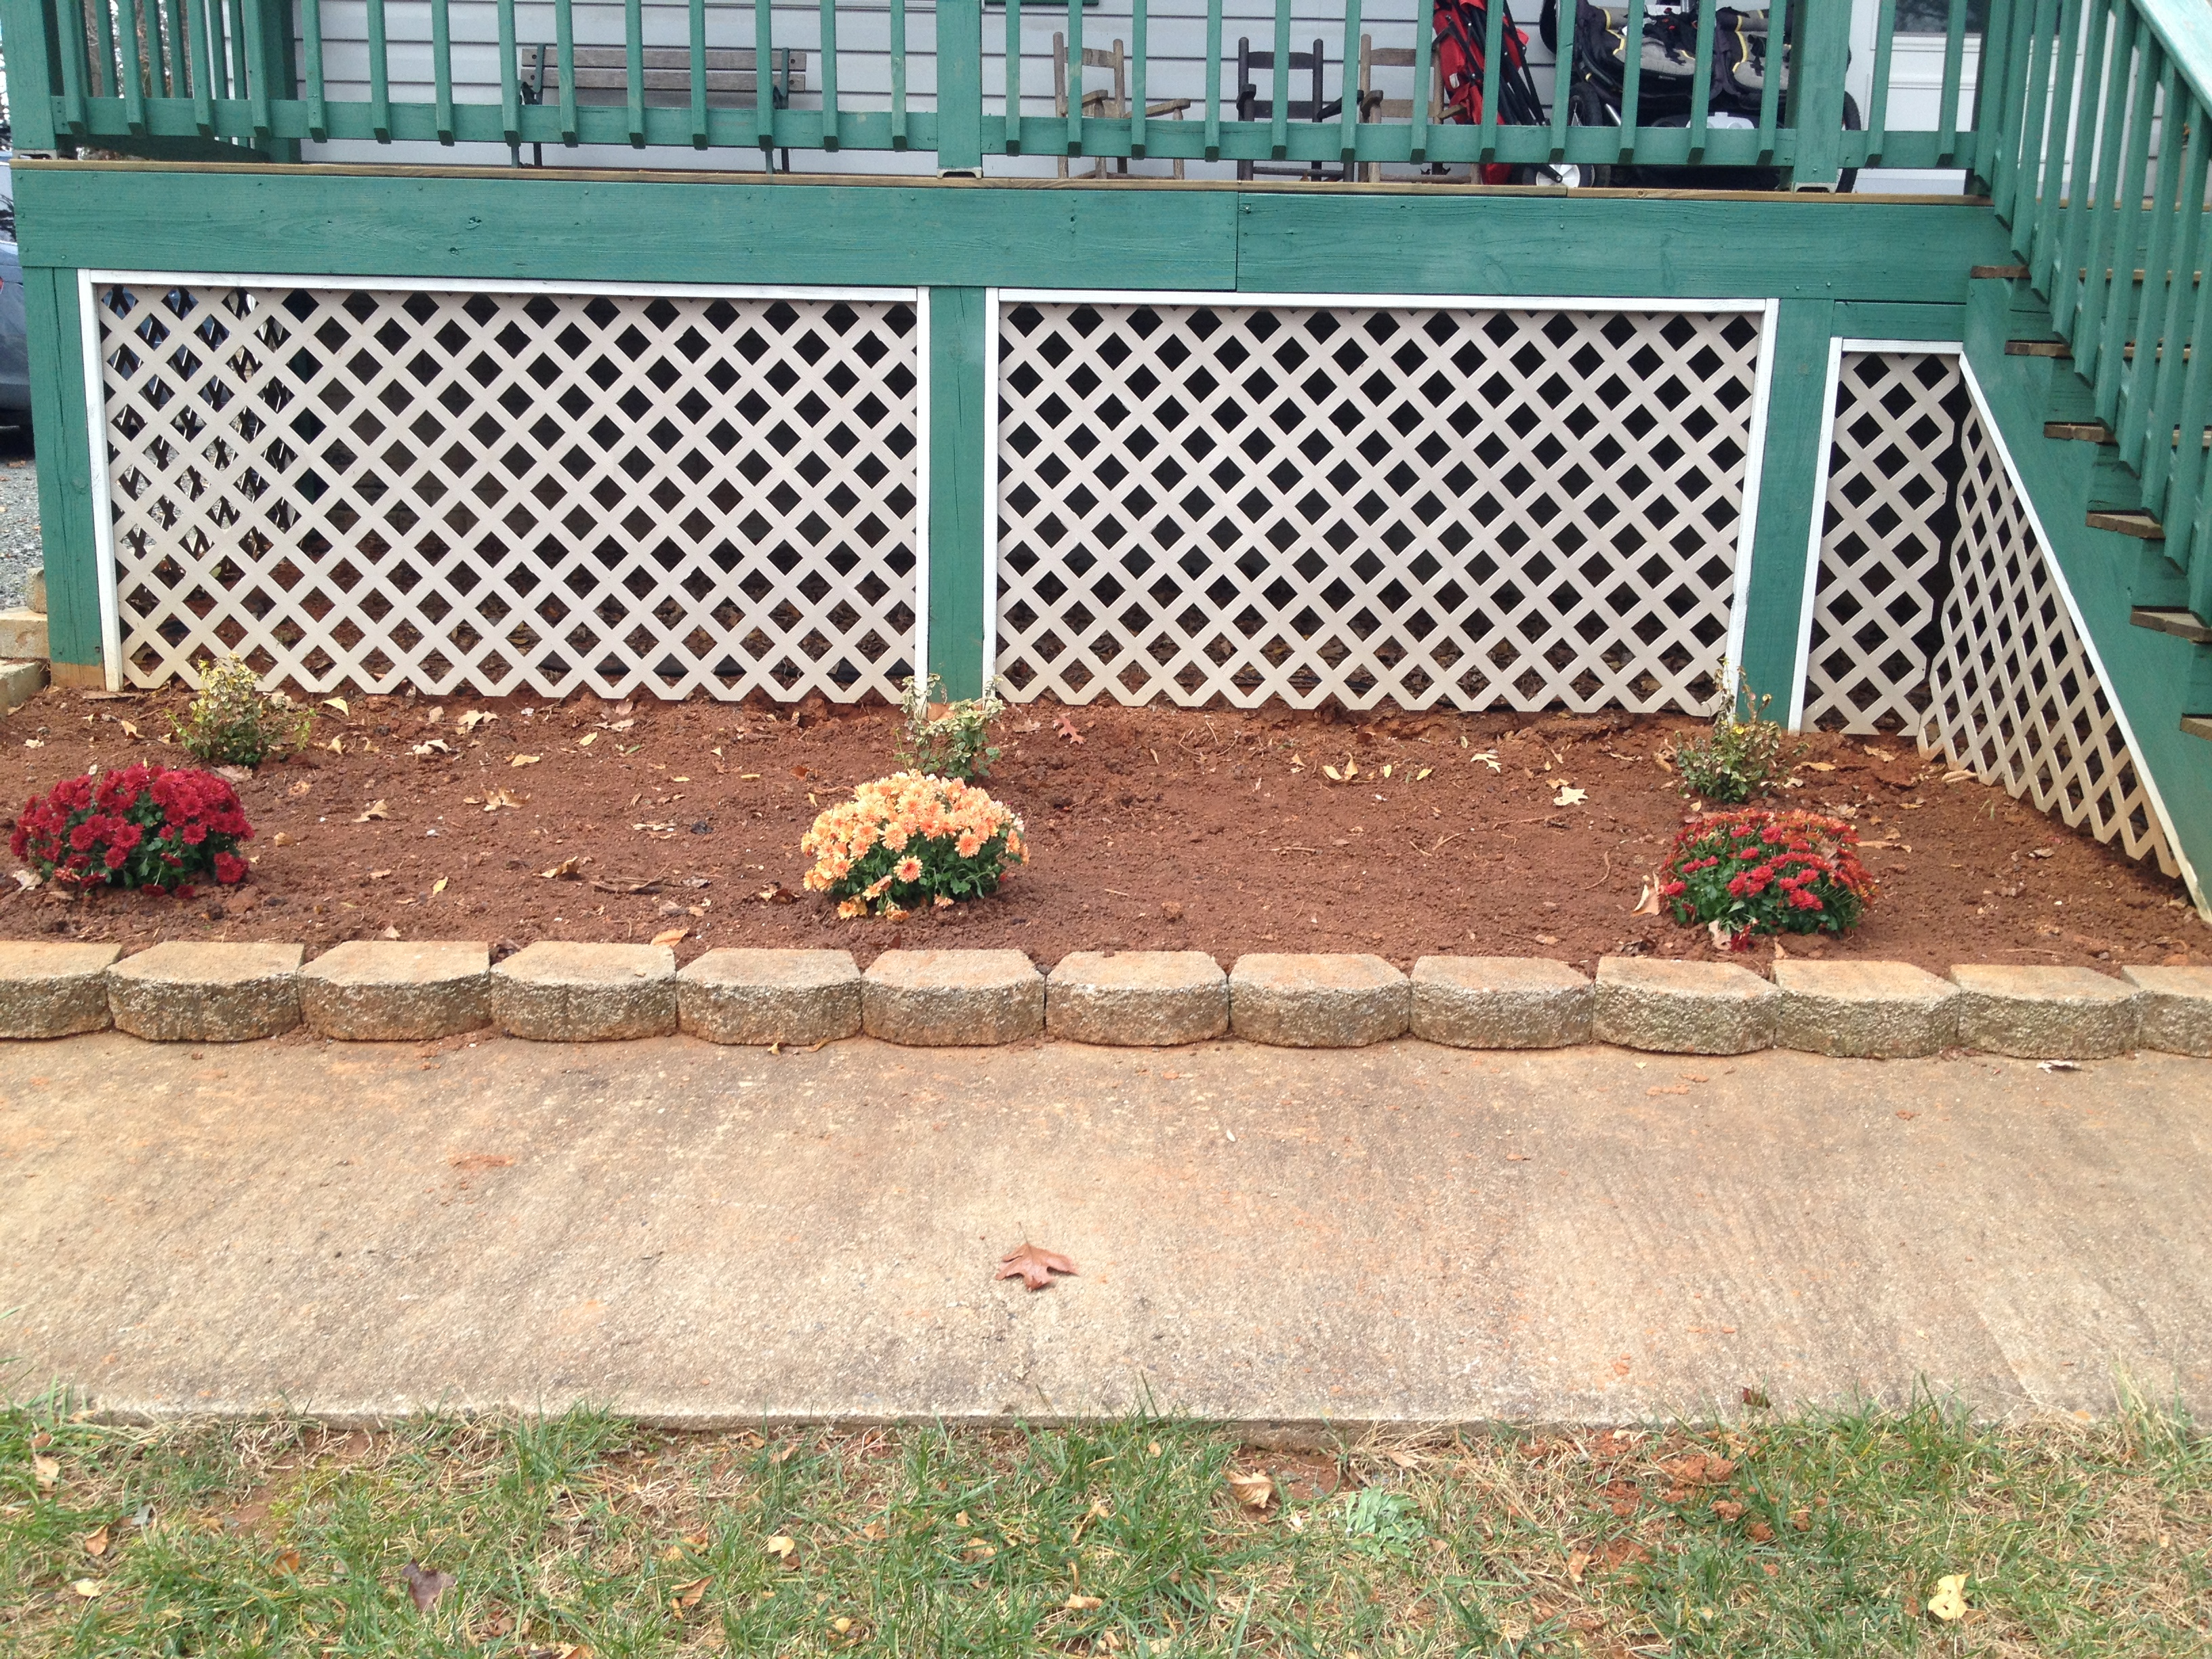 Freshly planted mums and shrubs.